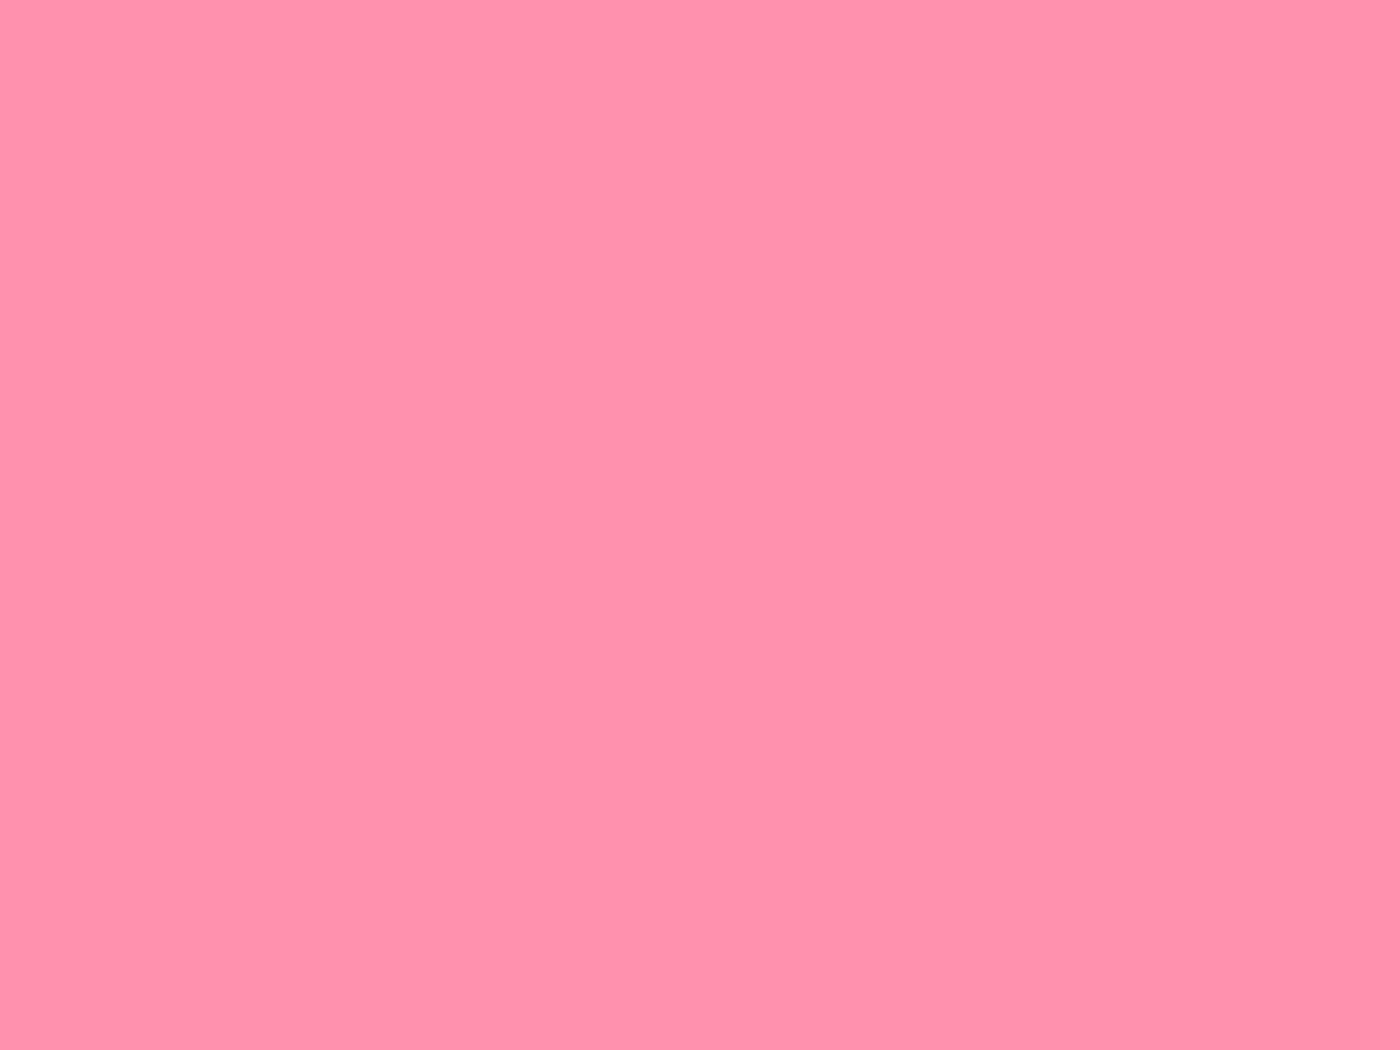 1400x1050 Schauss Pink Solid Color Background